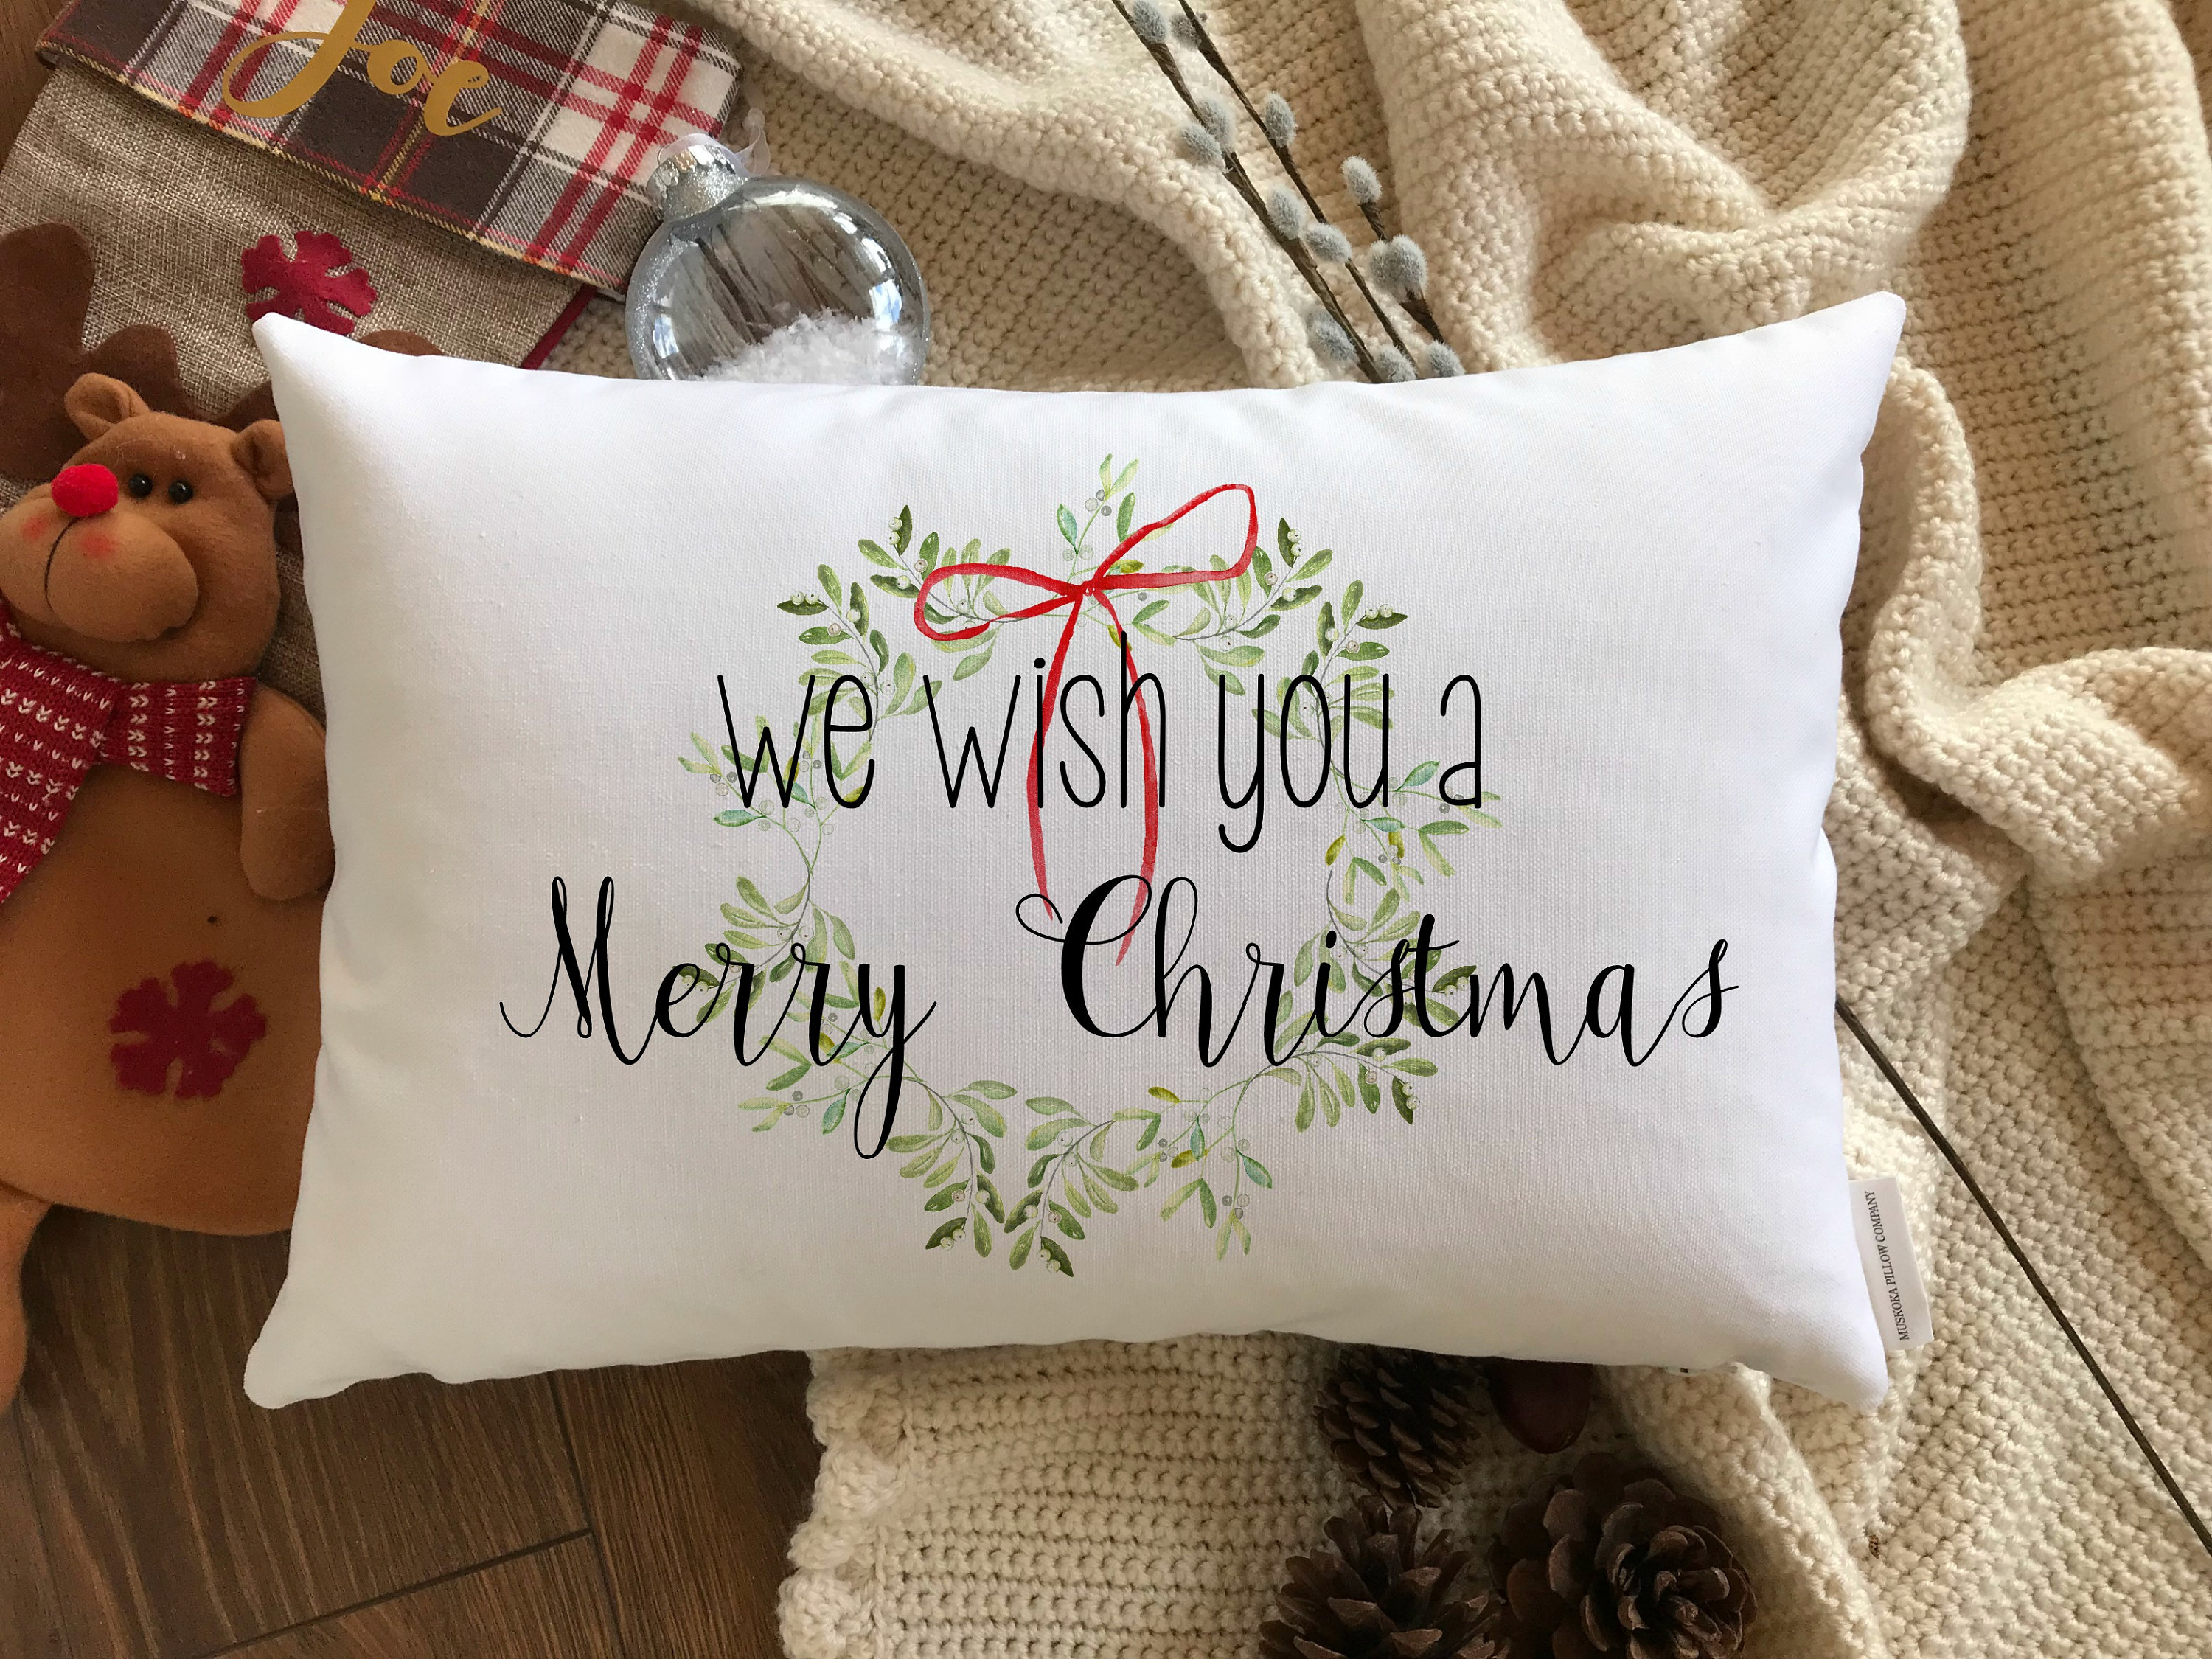 we wish you a merry christmas pillow cover mistletoe wreath pillow cover christmas pillows multiple sizes holiday decor